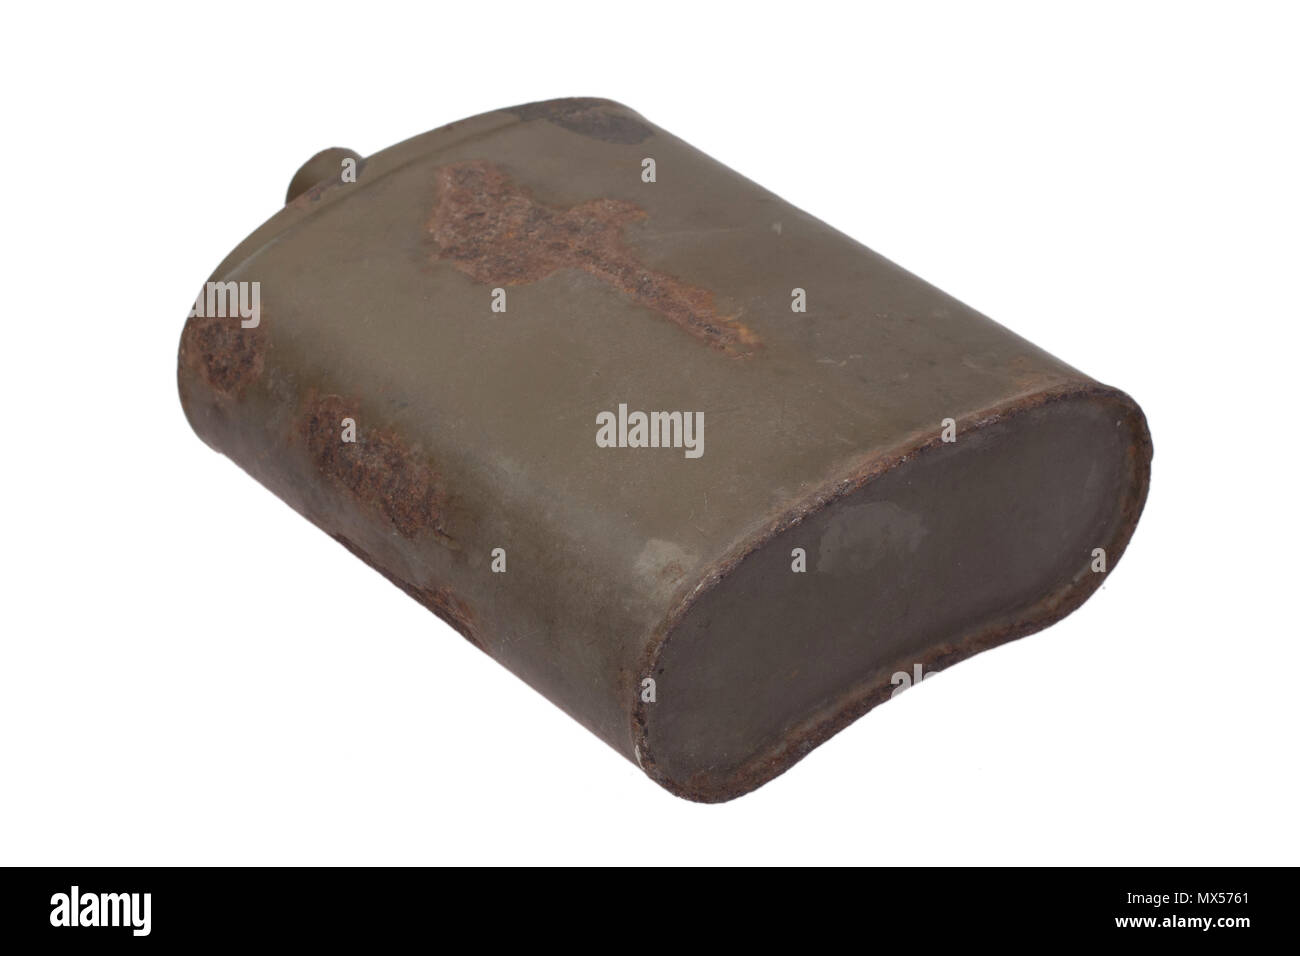 Vintage Austro-Hungarian military canteen WWI period - Stock Image